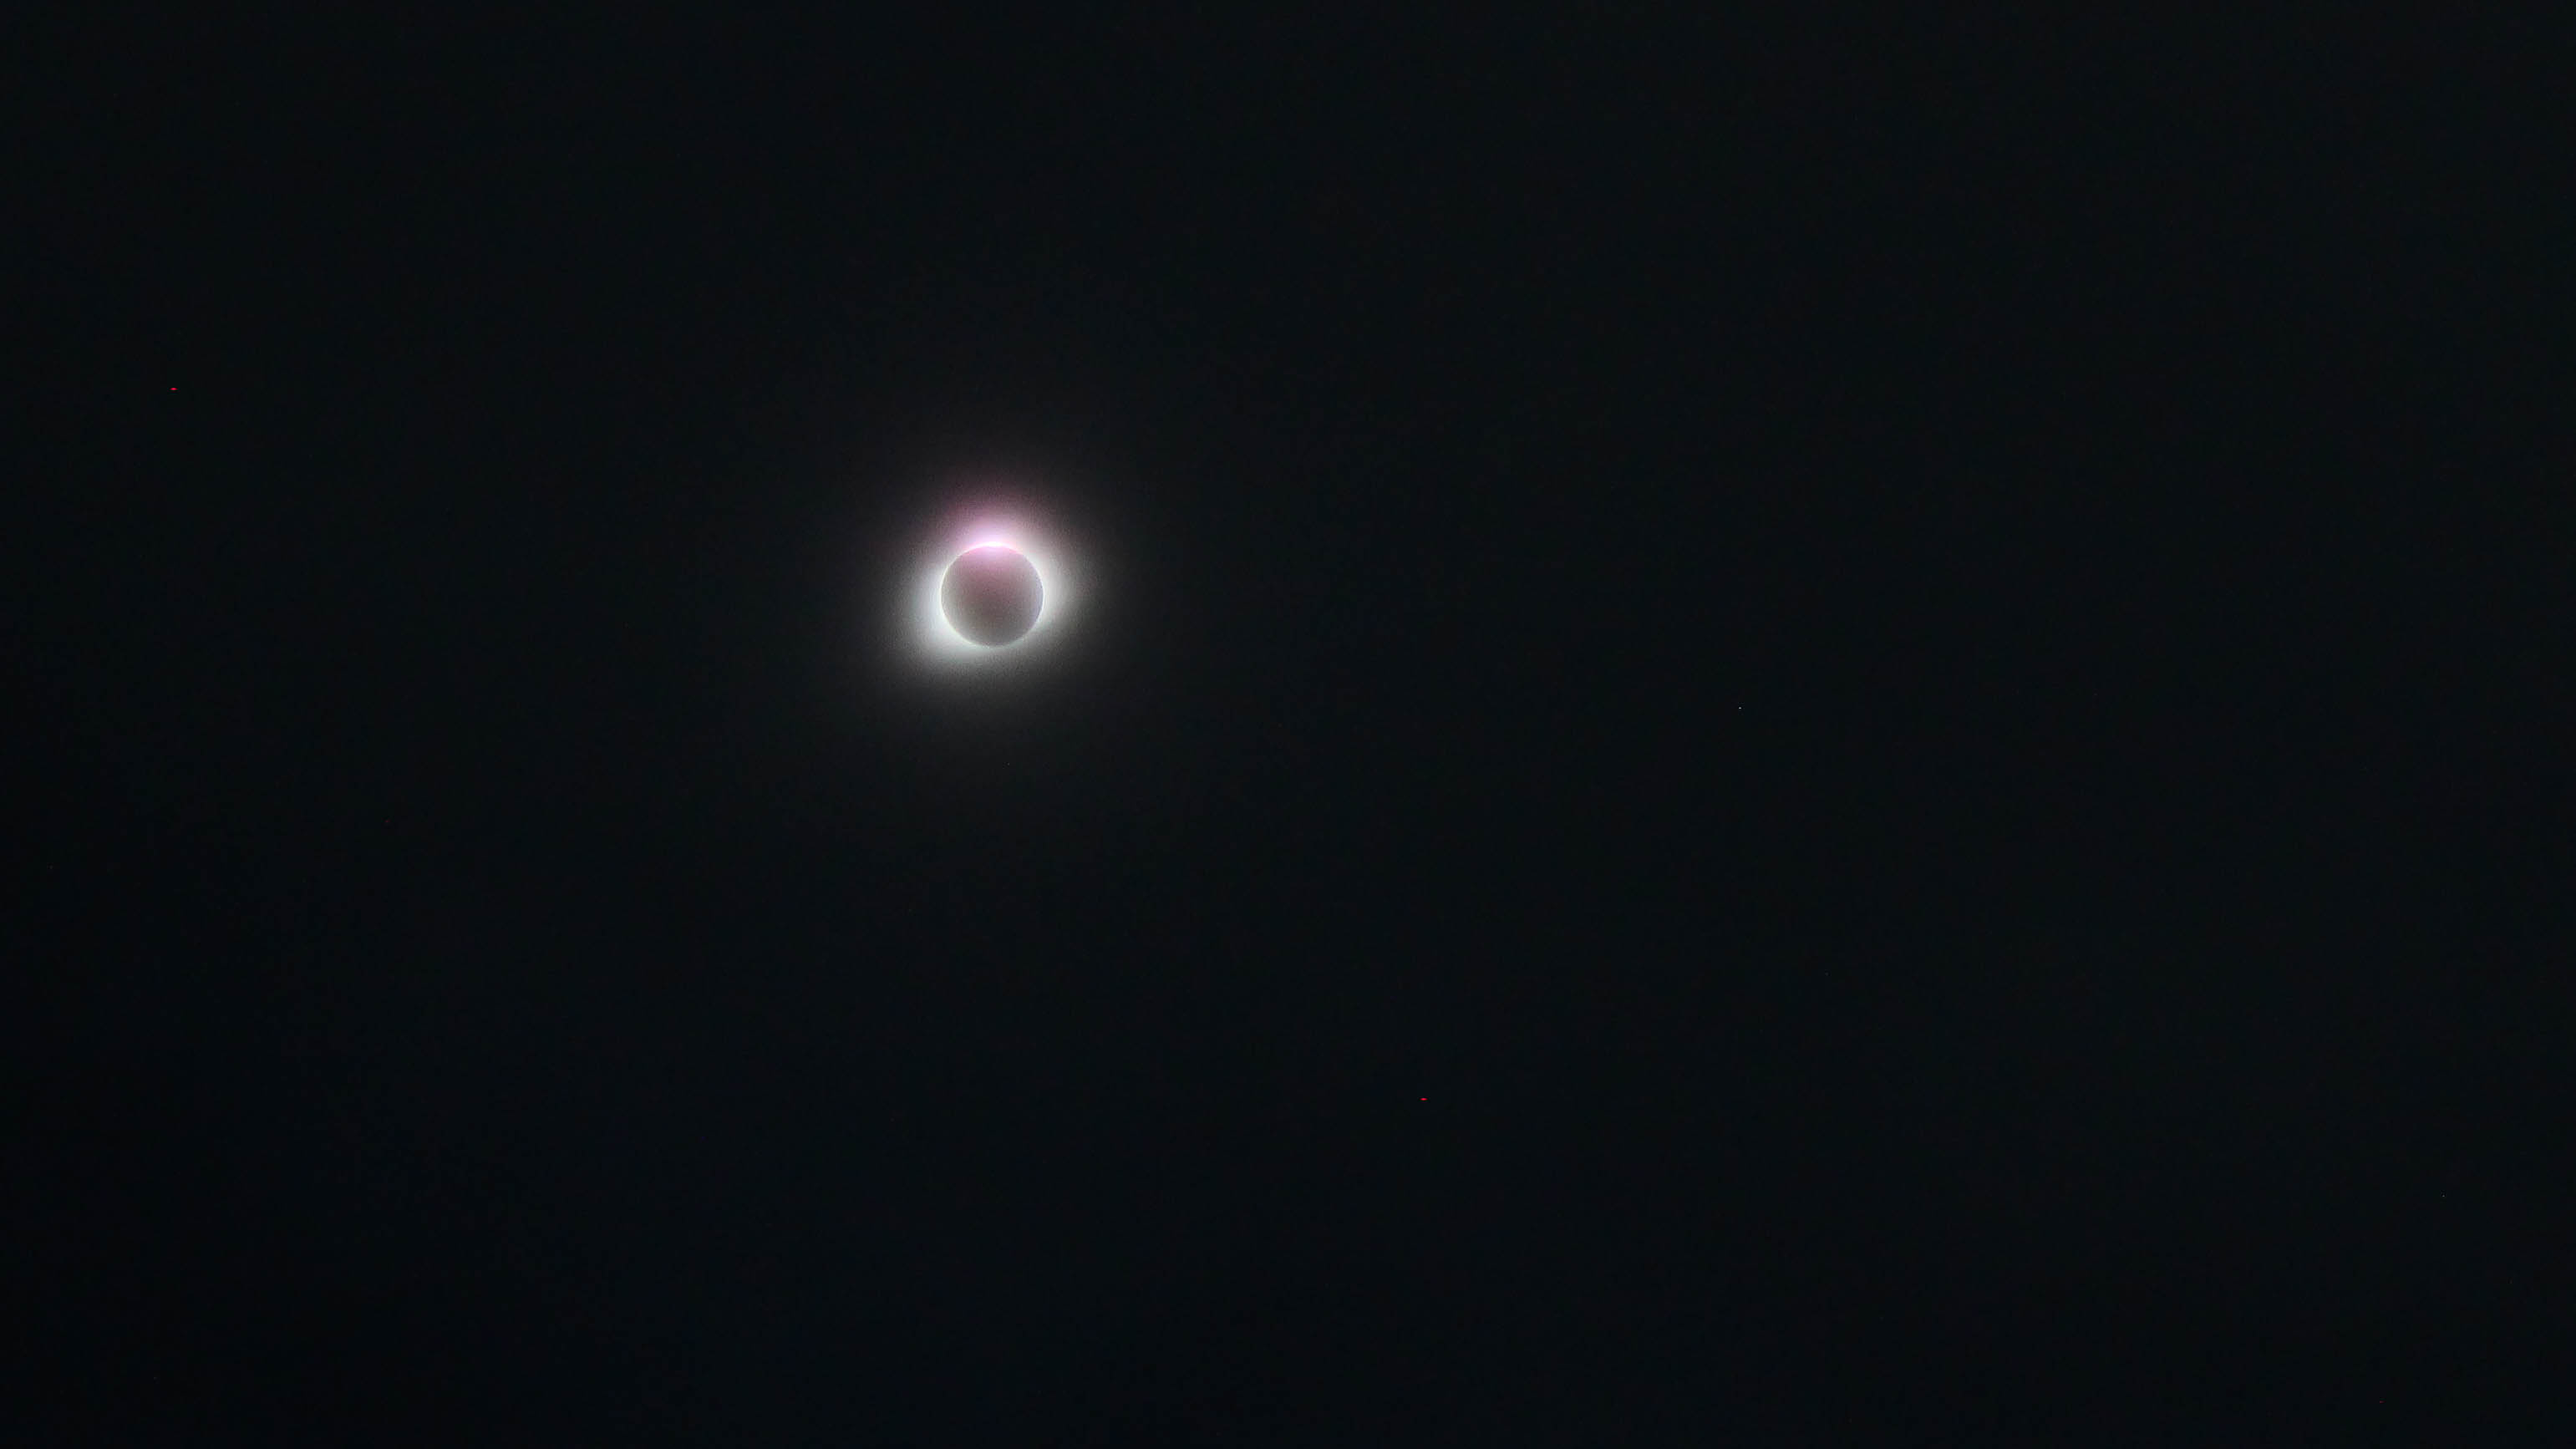 Clouds Clear To Reveal Total Solar Eclipse